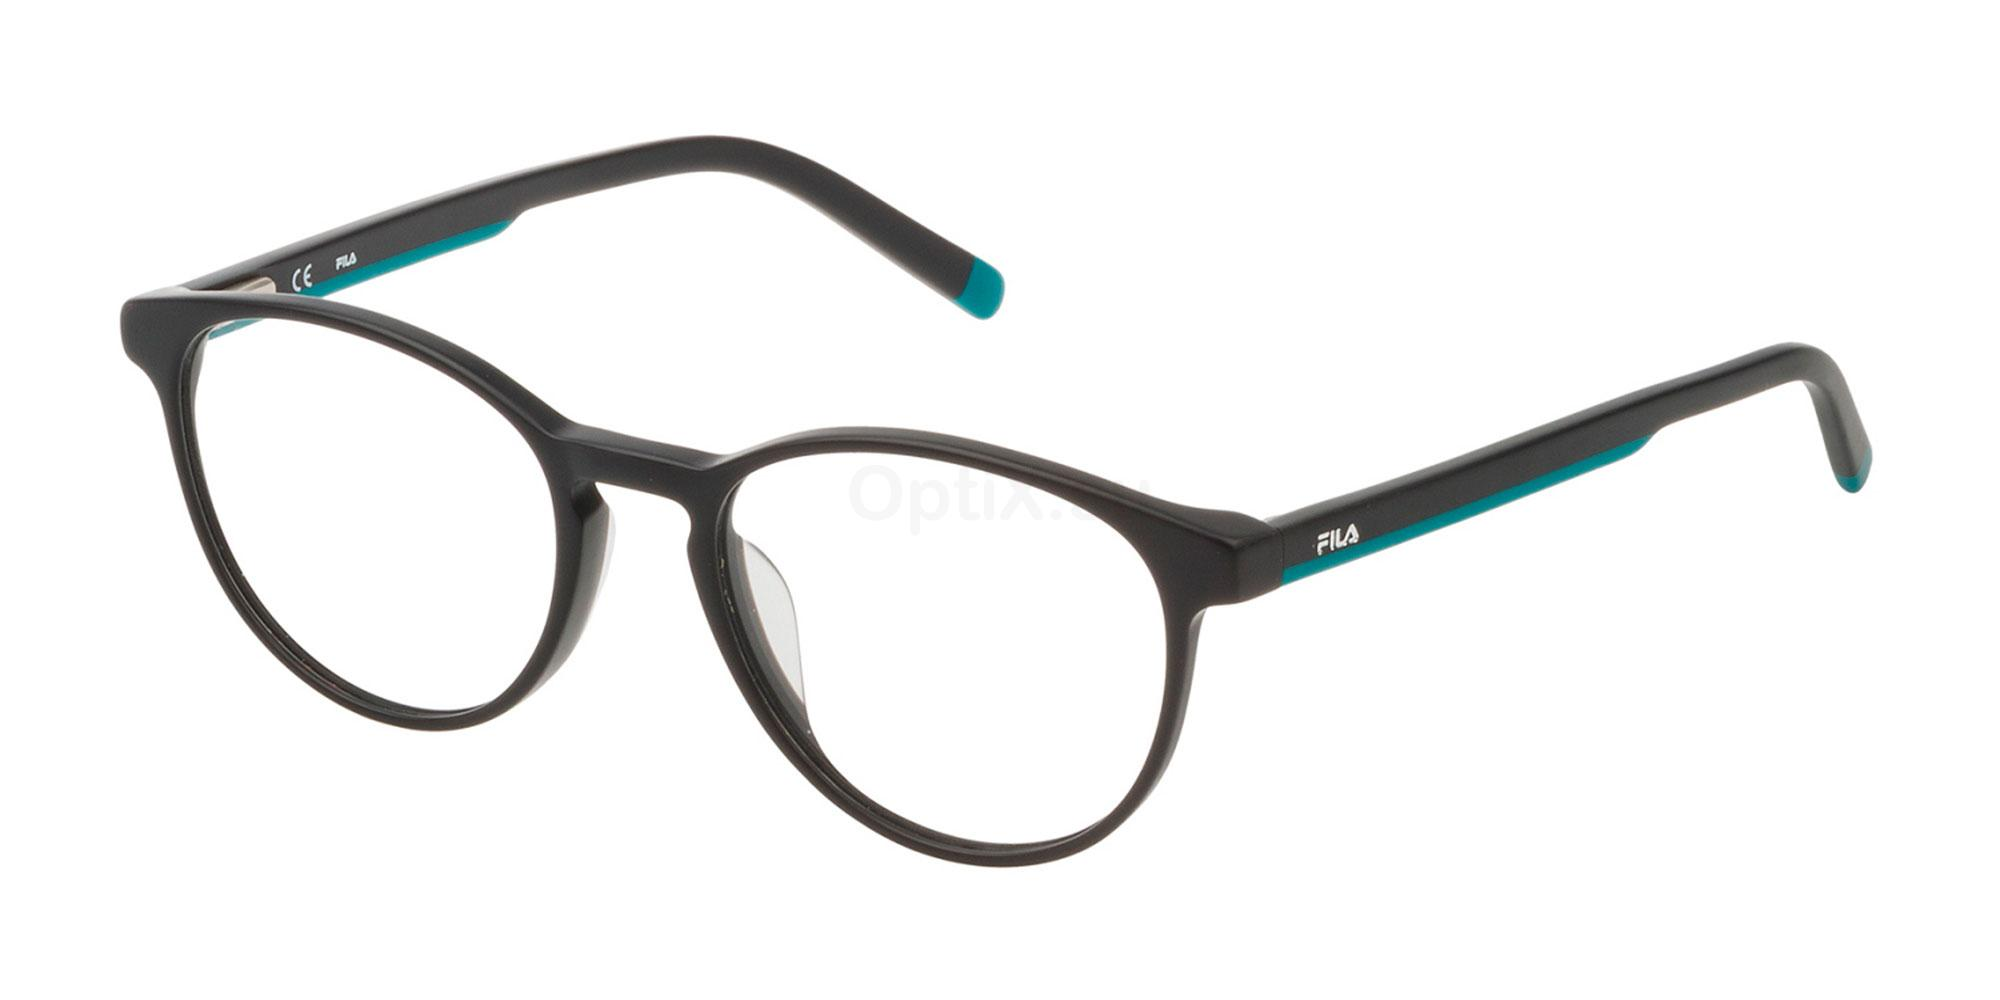 1GPM VF9241 Glasses, Fila